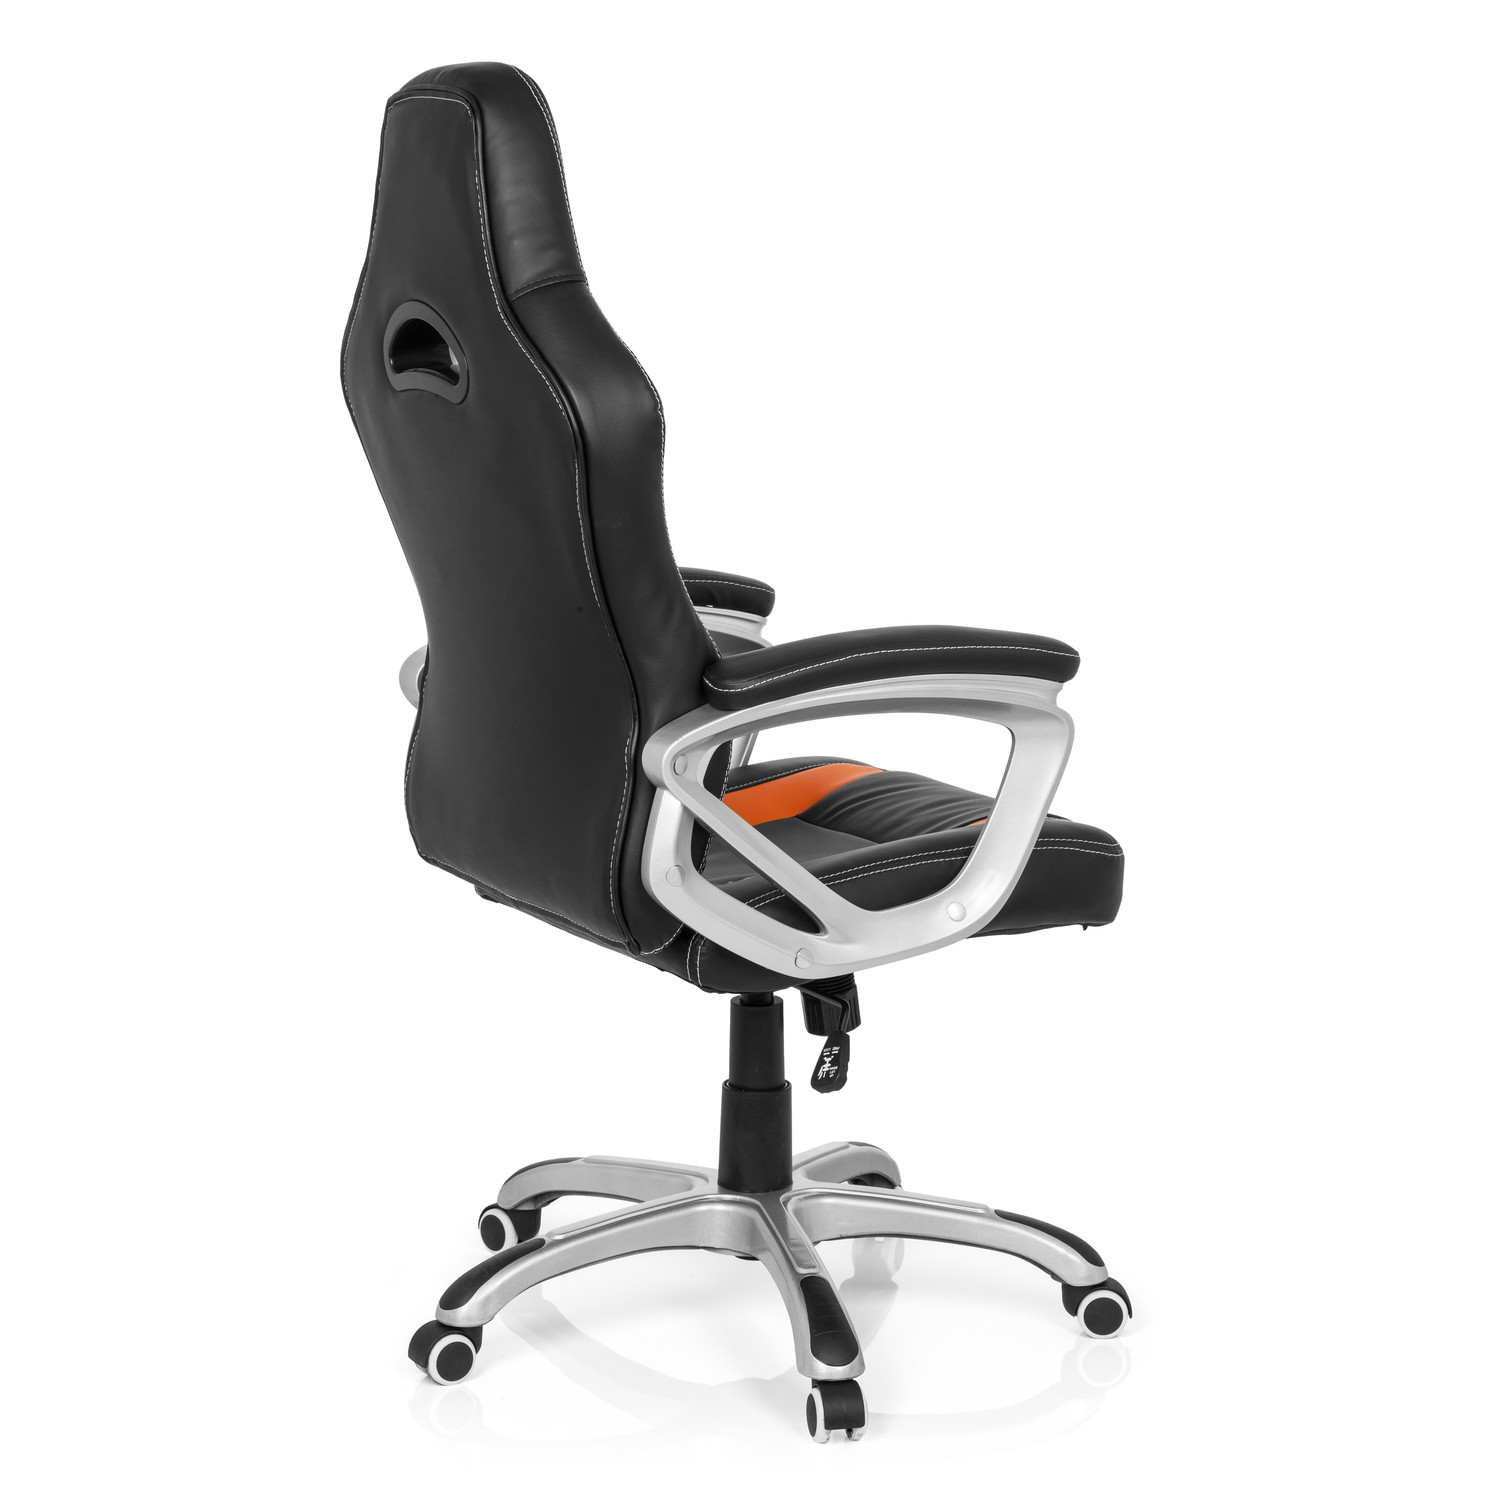 Silla gamer deportiva kenia exclusivo dise o con costuras for Rebajas sillas gaming